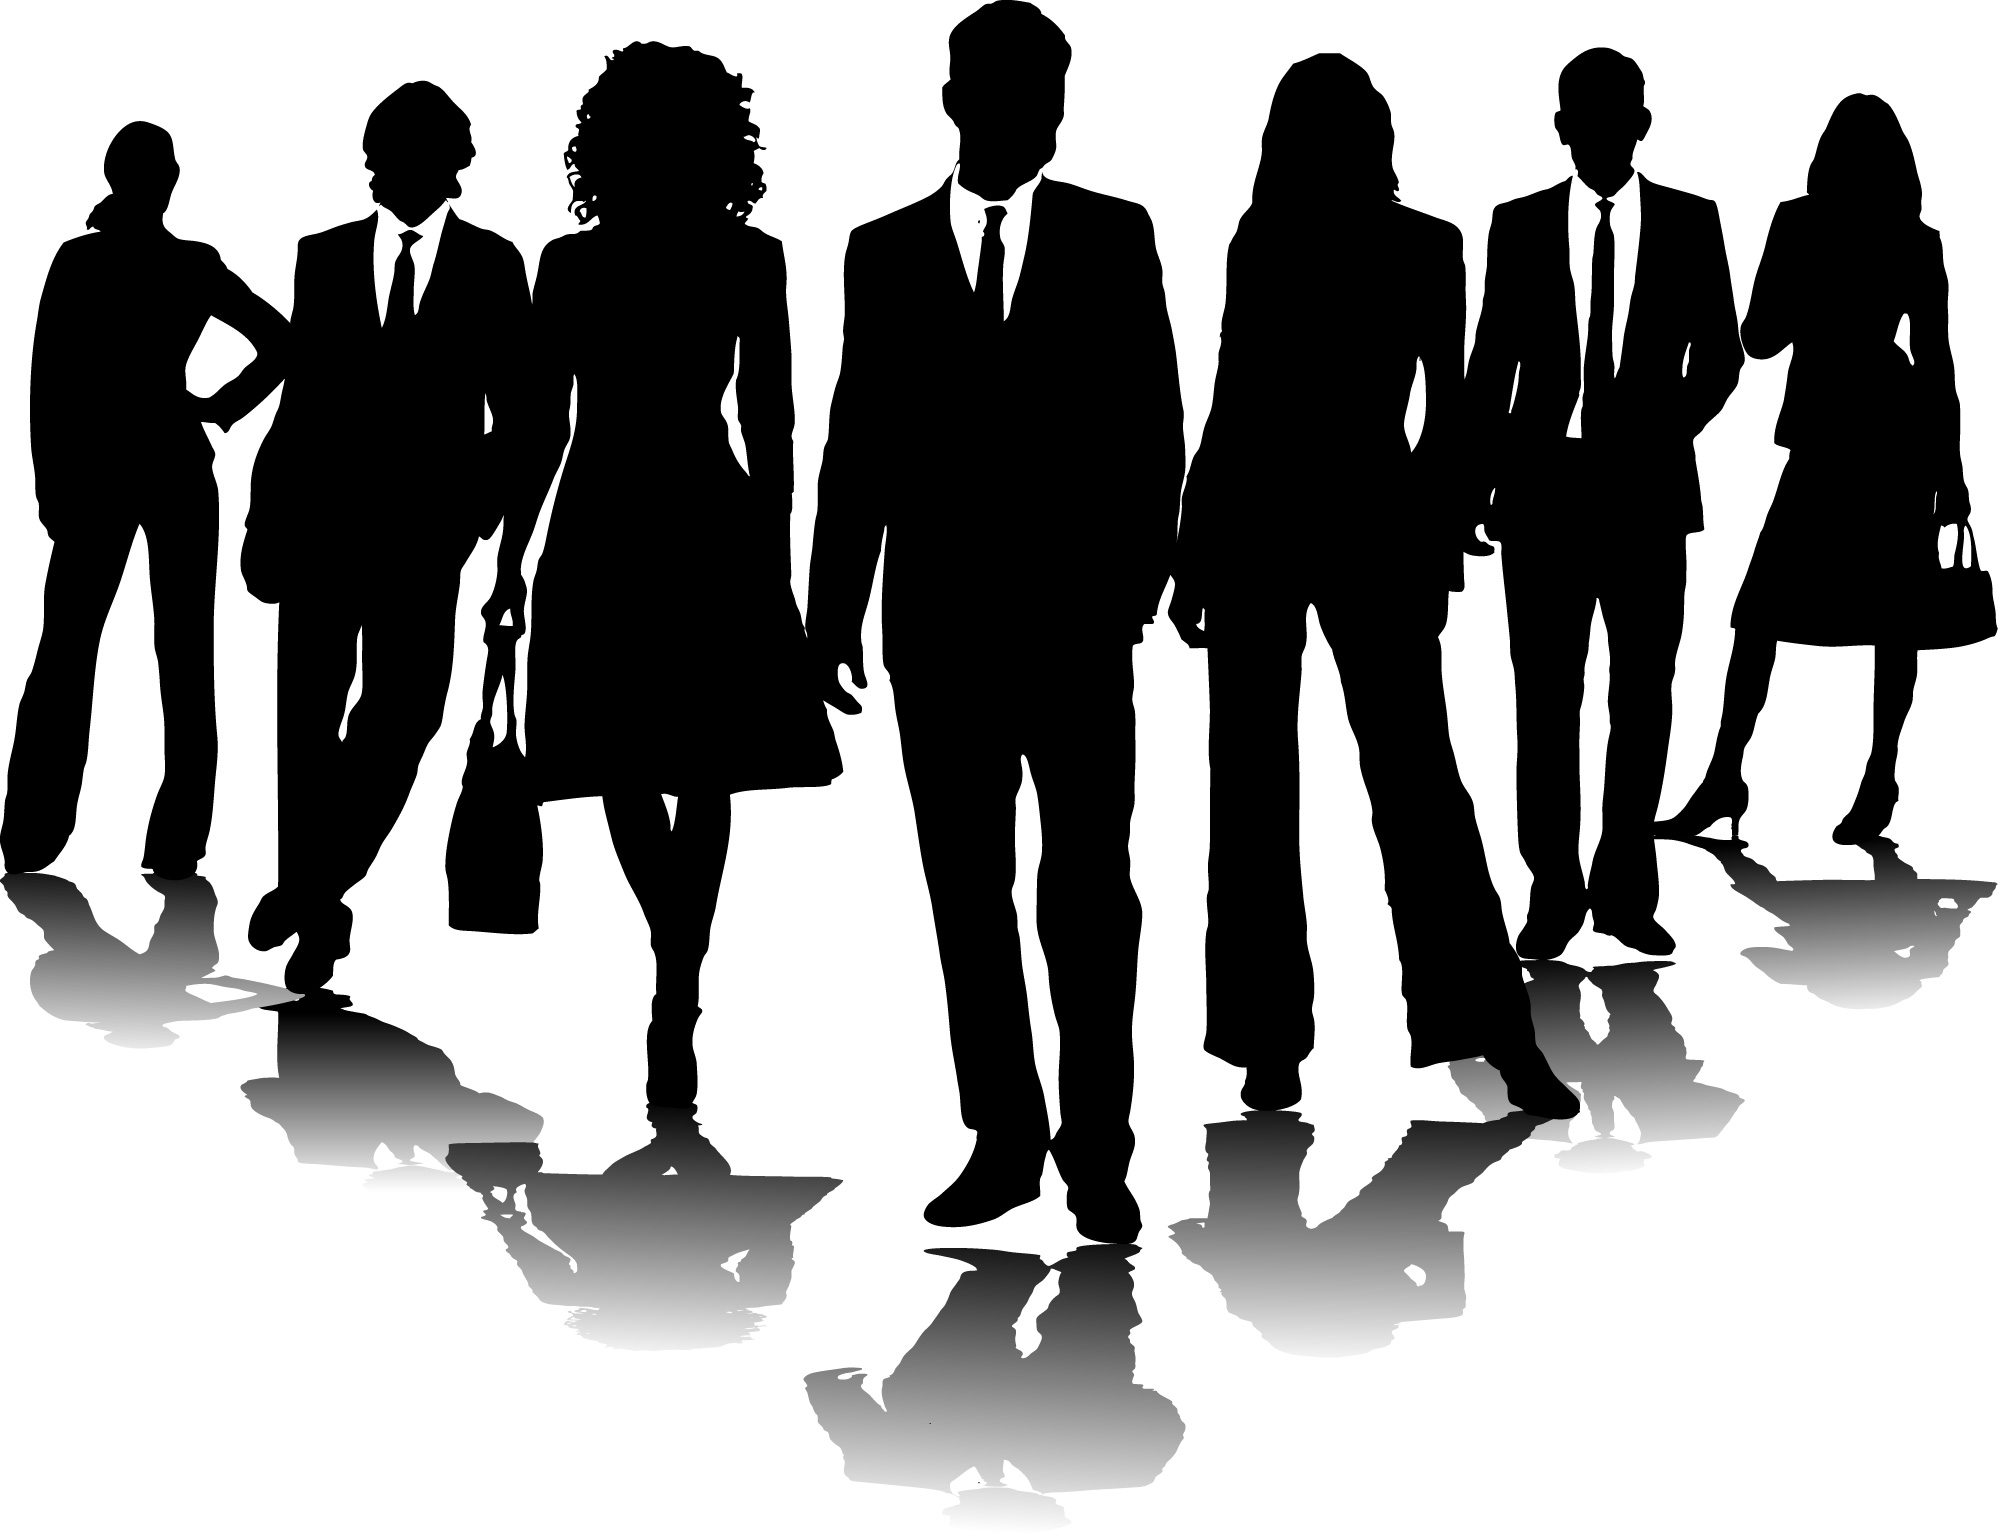 12 Business People Graphics Free Images